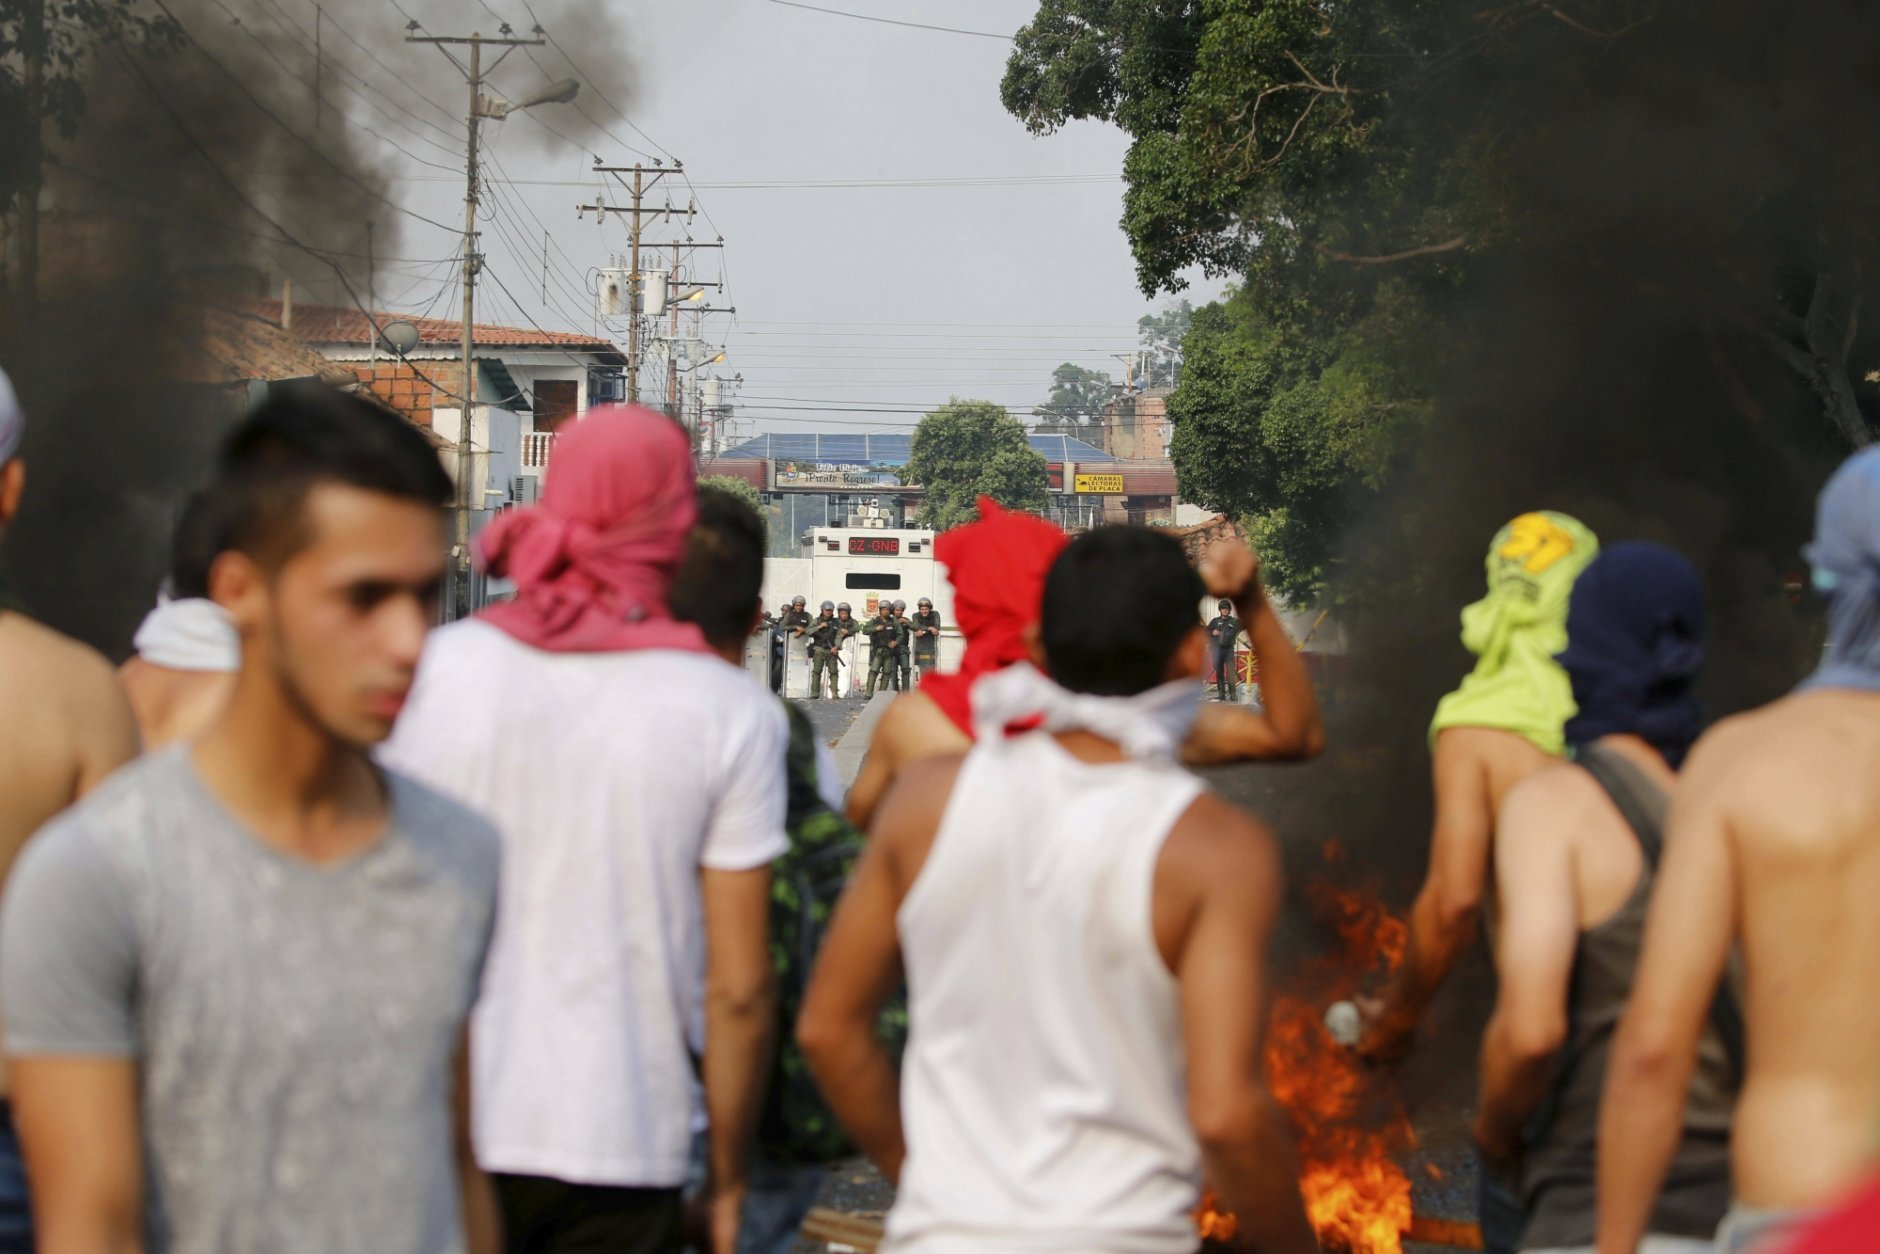 Opposition members pray during clashes with the Bolivarian National Guard in Urena, Venezuela, near the border with Colombia, Saturday, Feb. 23, 2019. Venezuela's National Guard fired tear gas on residents clearing a barricaded border bridge between Venezuela and Colombia on Saturday, heightening tensions over blocked humanitarian aid that opposition leader Juan Guaido has vowed to bring into the country over objections from President Nicolas Maduro(AP Photo/Fernando Llano)